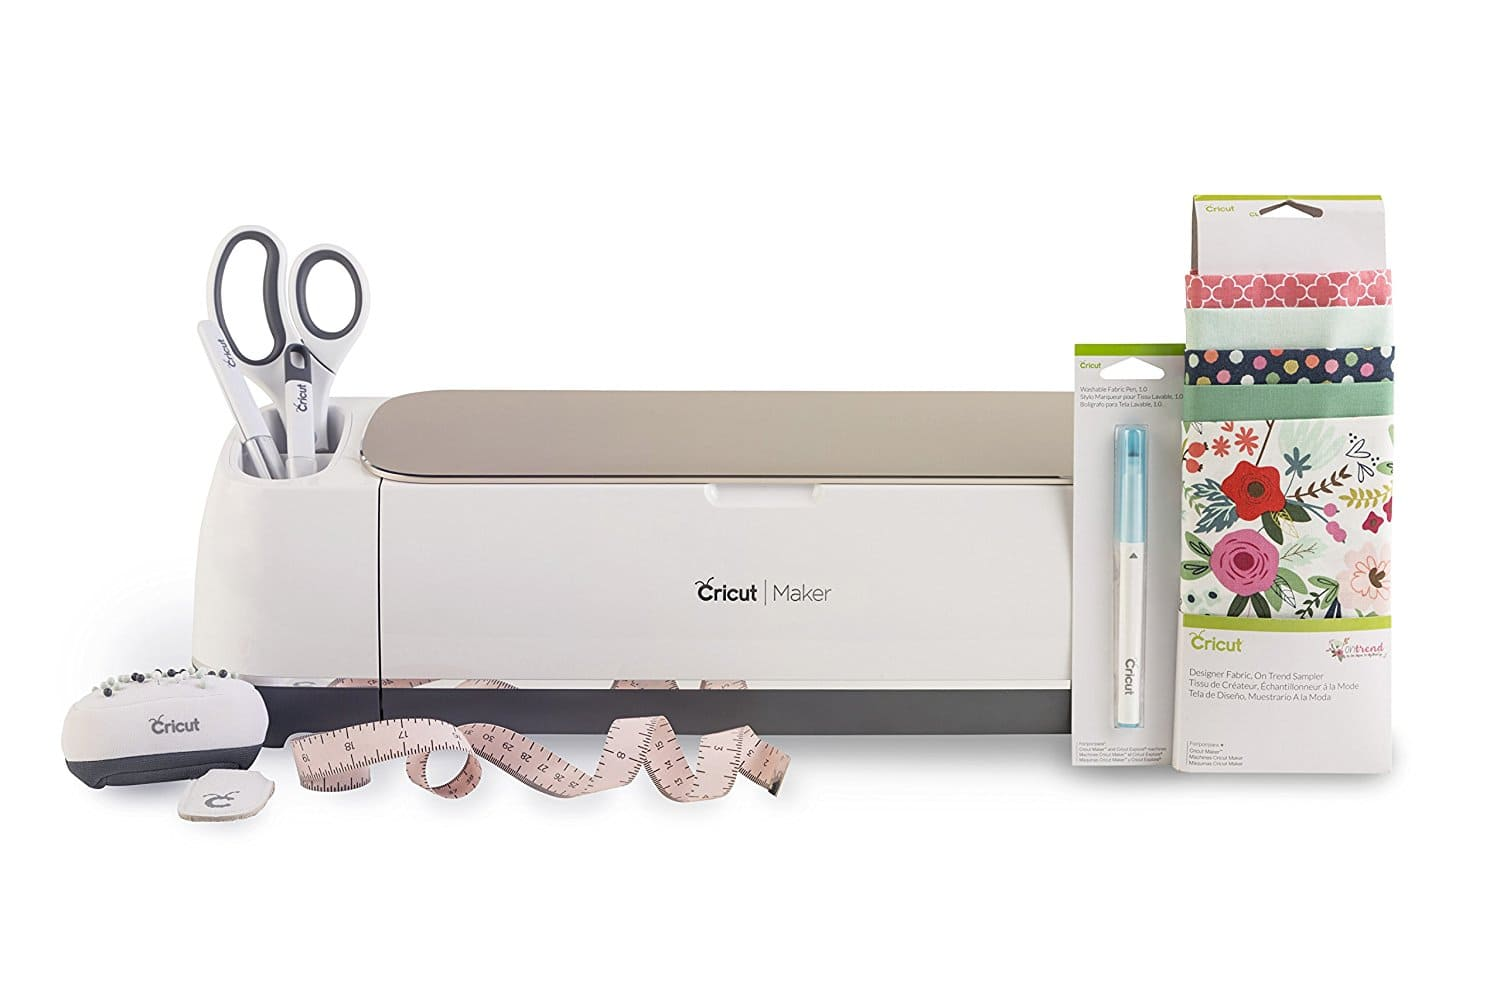 Cricut Maker Fabric Bundle - Slickdeals net